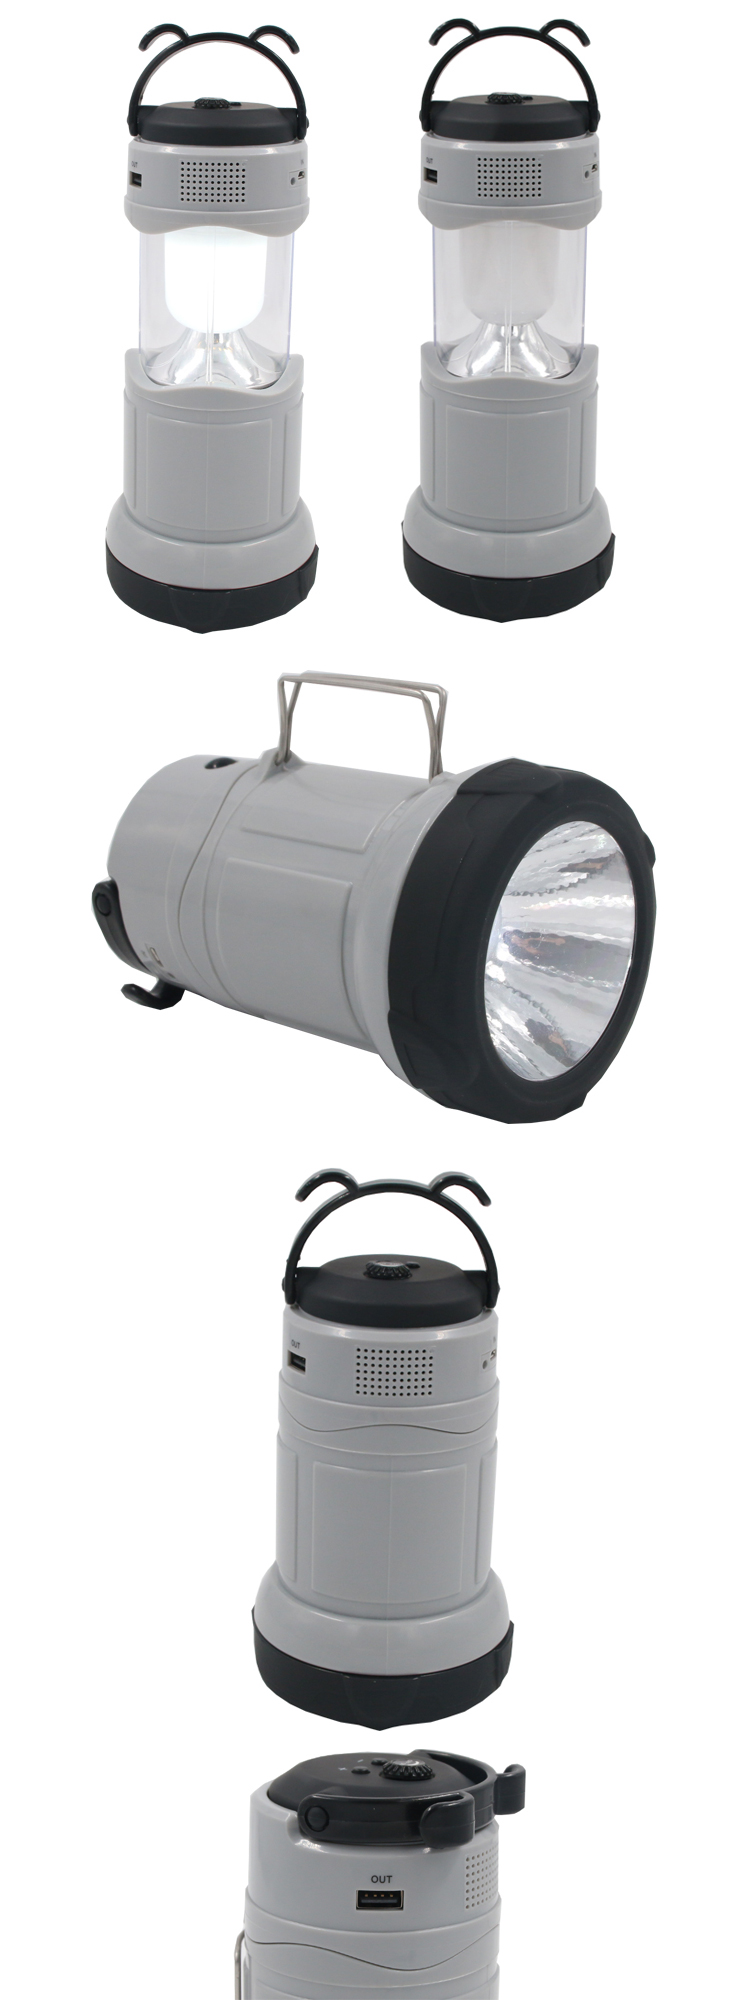 Creative LED Night Light 2 In1 Camping Lantern Torch Lamp With Radio